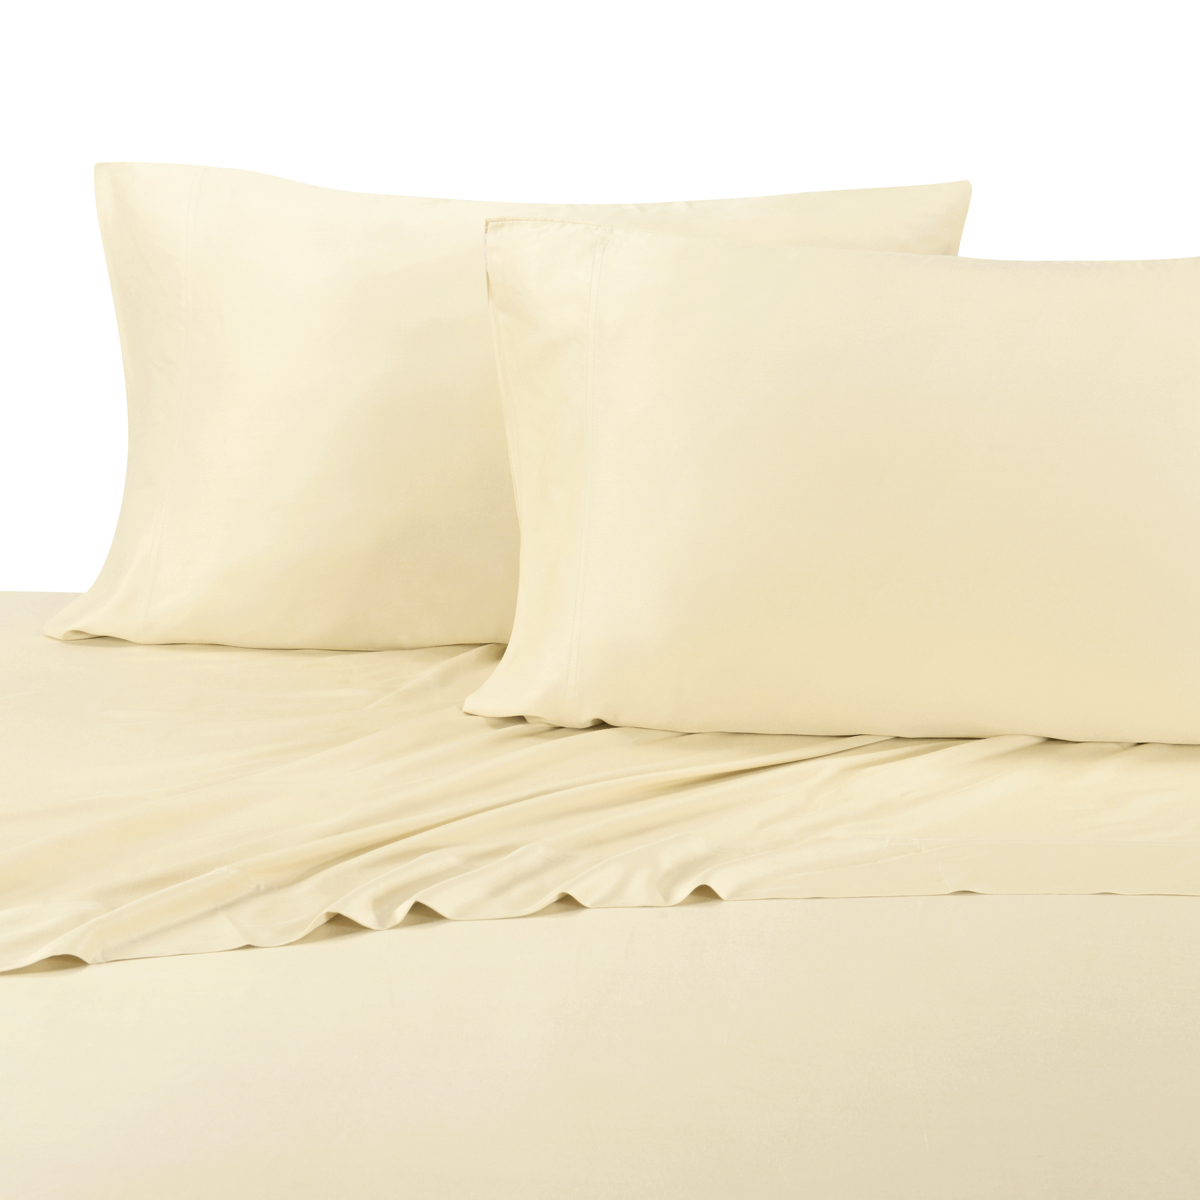 Luxury Bamboo Bed Sheet Super Soft U0026 Extremely Cool 100% Bamboo Viscose  Sheets Deep Pocket Sheet   Walmart.com